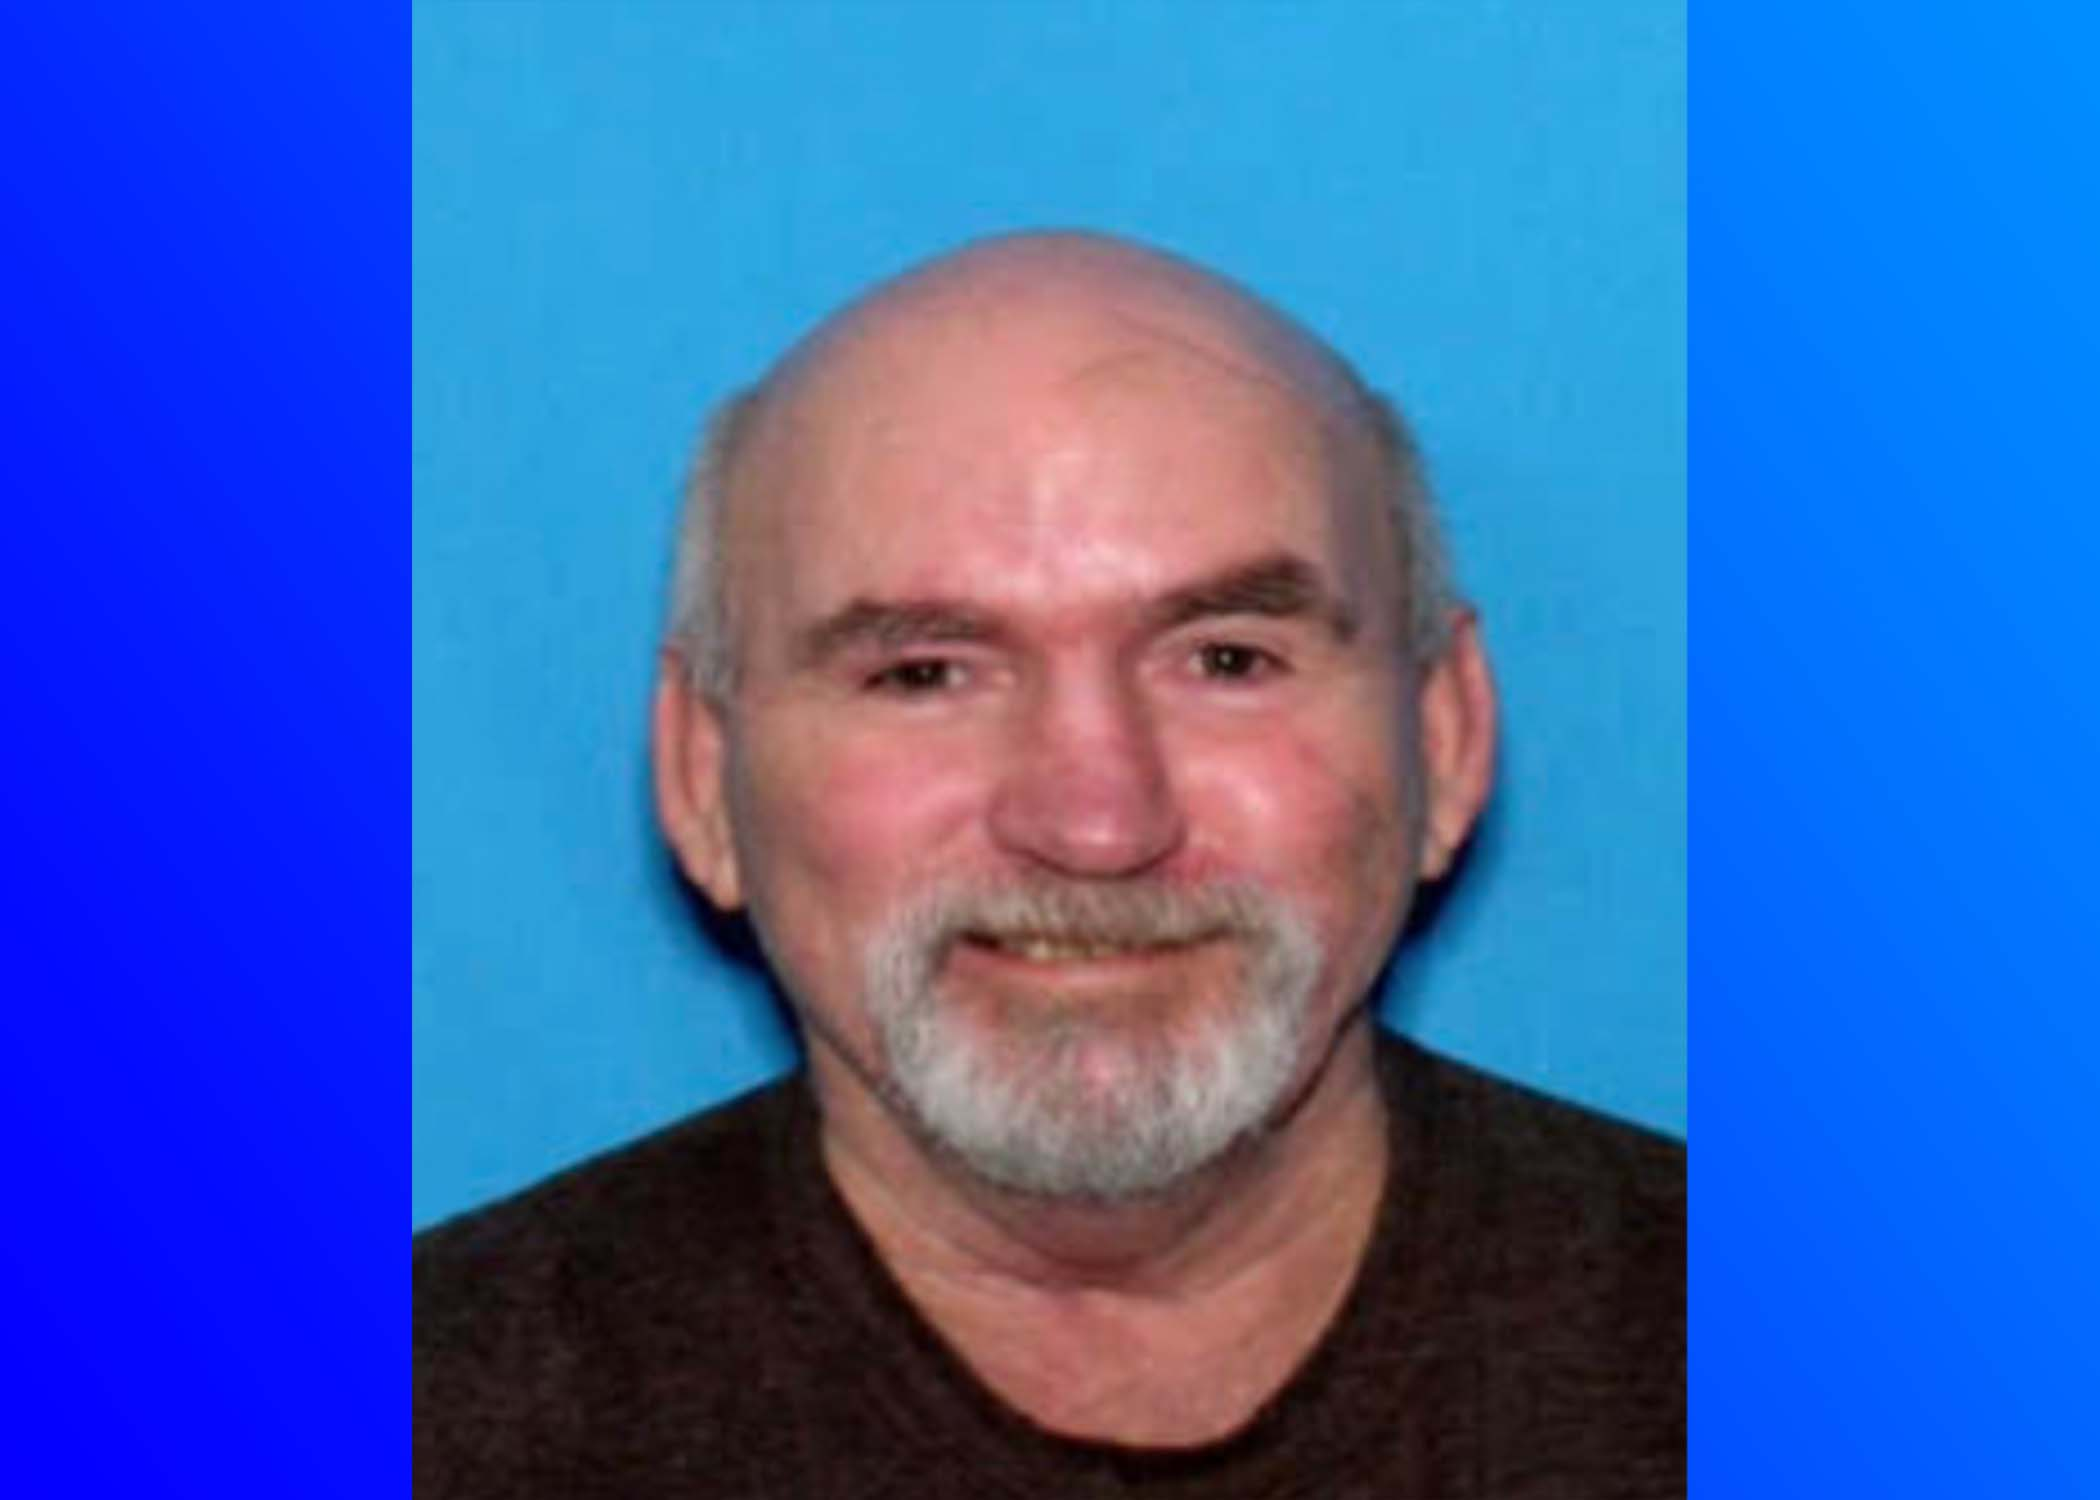 Birmingham Police issue critical missing person alert